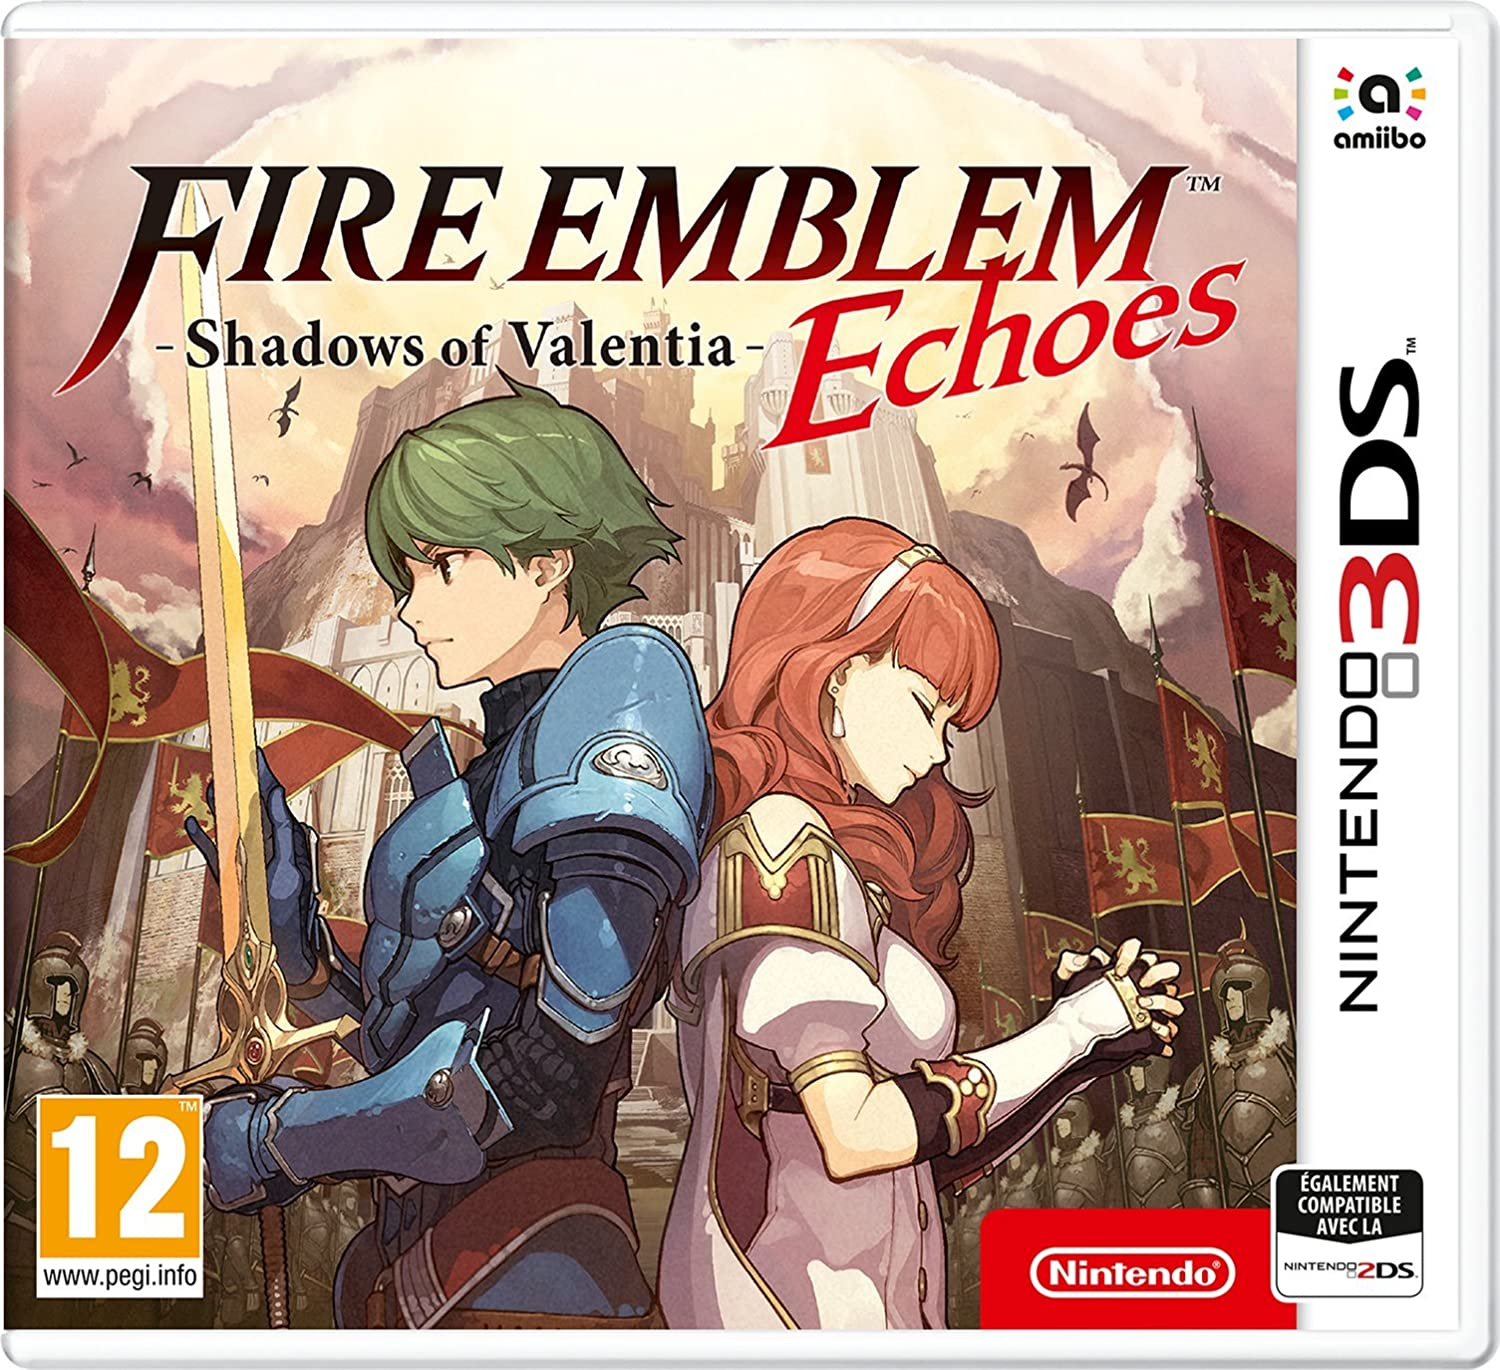 Fire Emblem Echoes : shadows of Valentia [3DS] | Nintendo